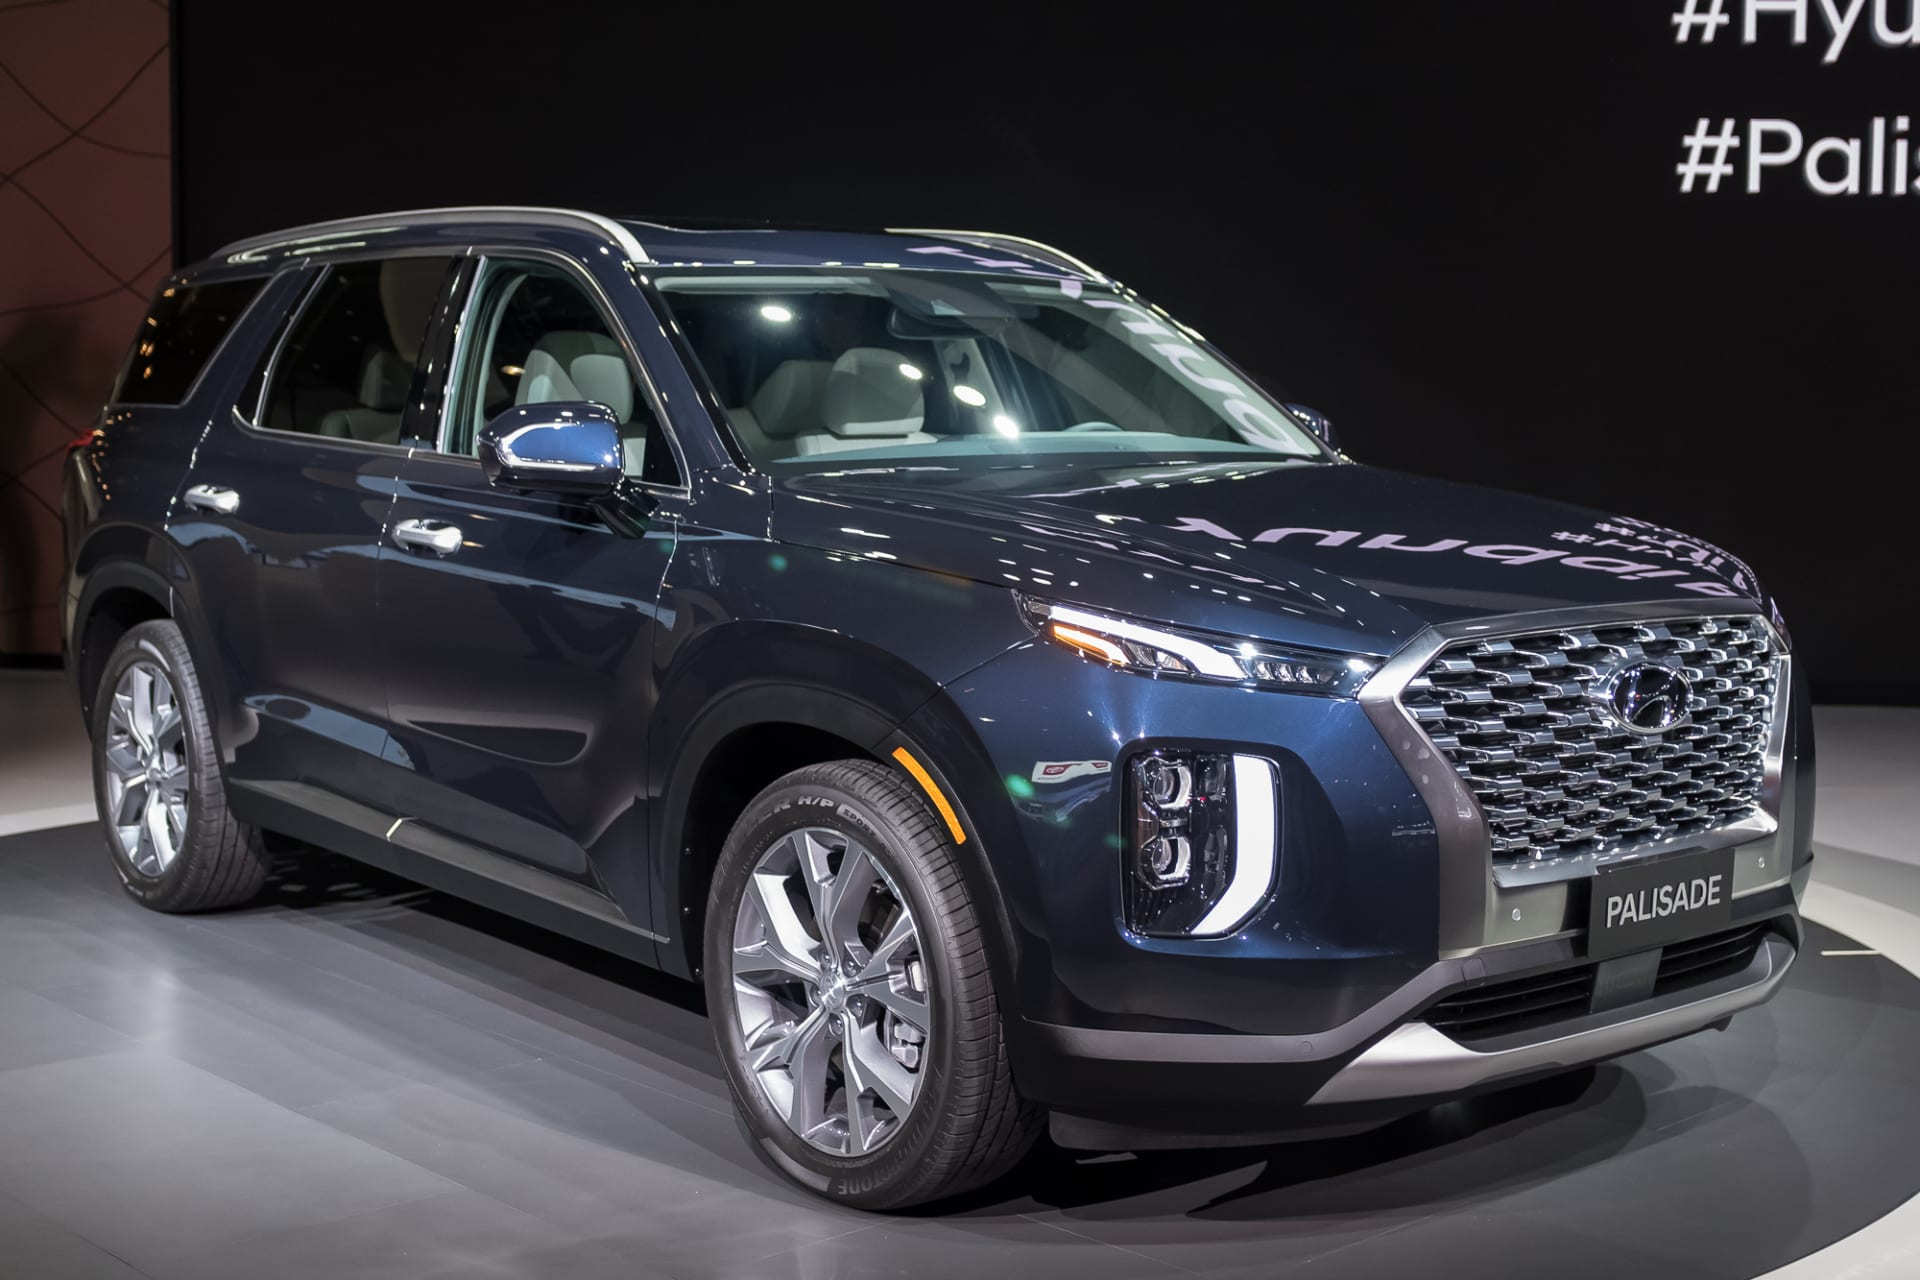 Best 3rd Row Suv 2020.2020 Hyundai Palisade A Hyundai Suv With A Real Third Row